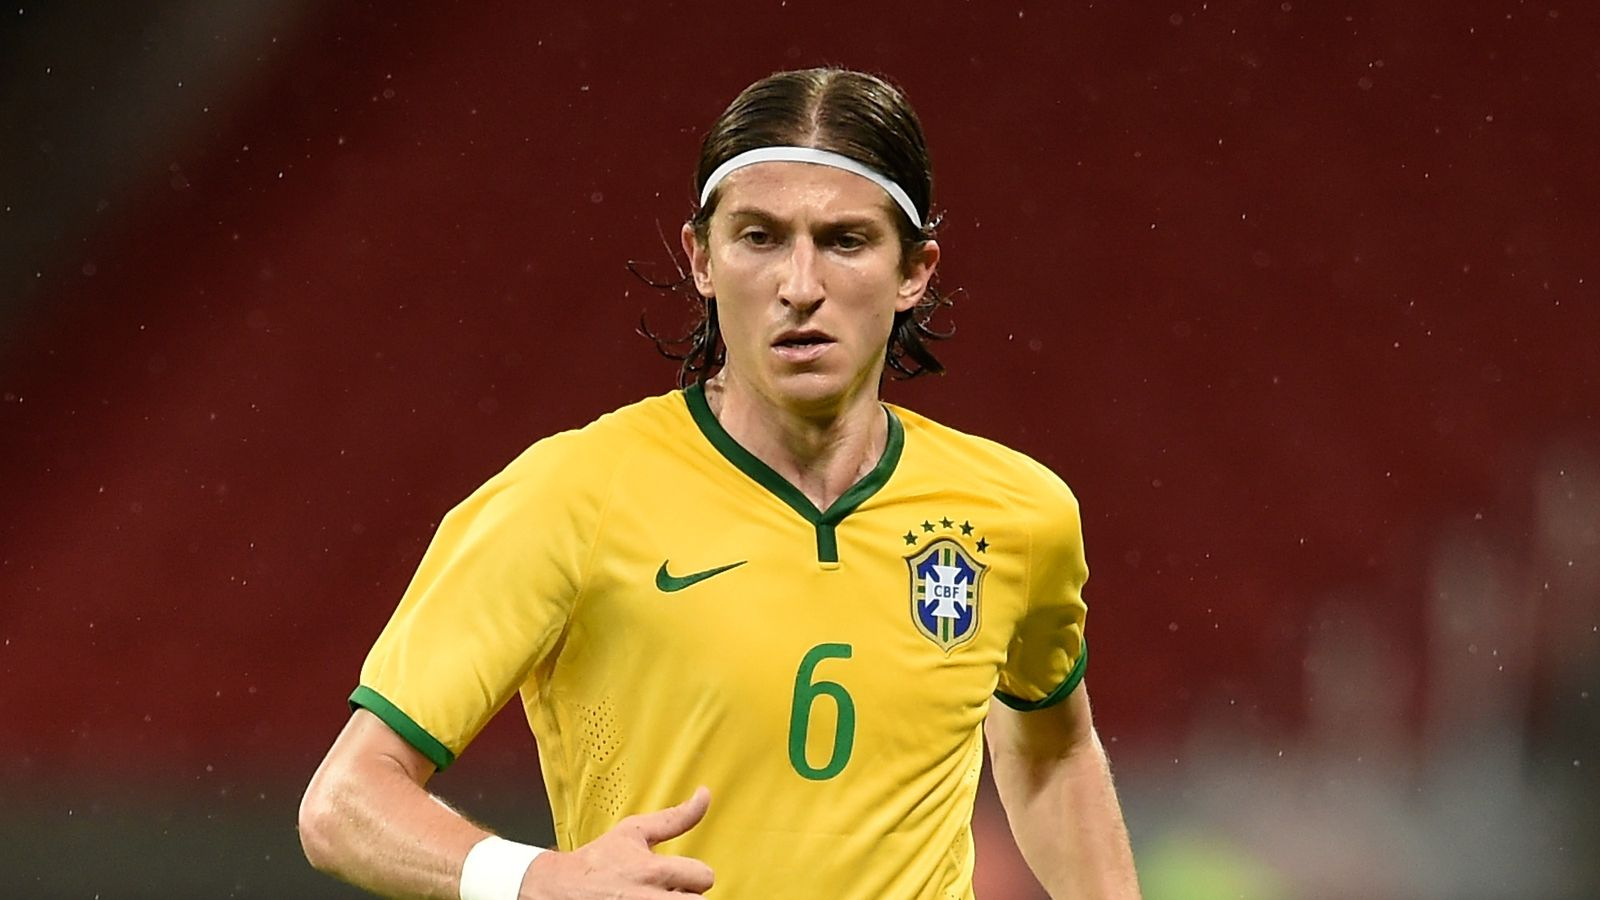 Filipe Luis set to move to Atletico Madrid from Chelsea